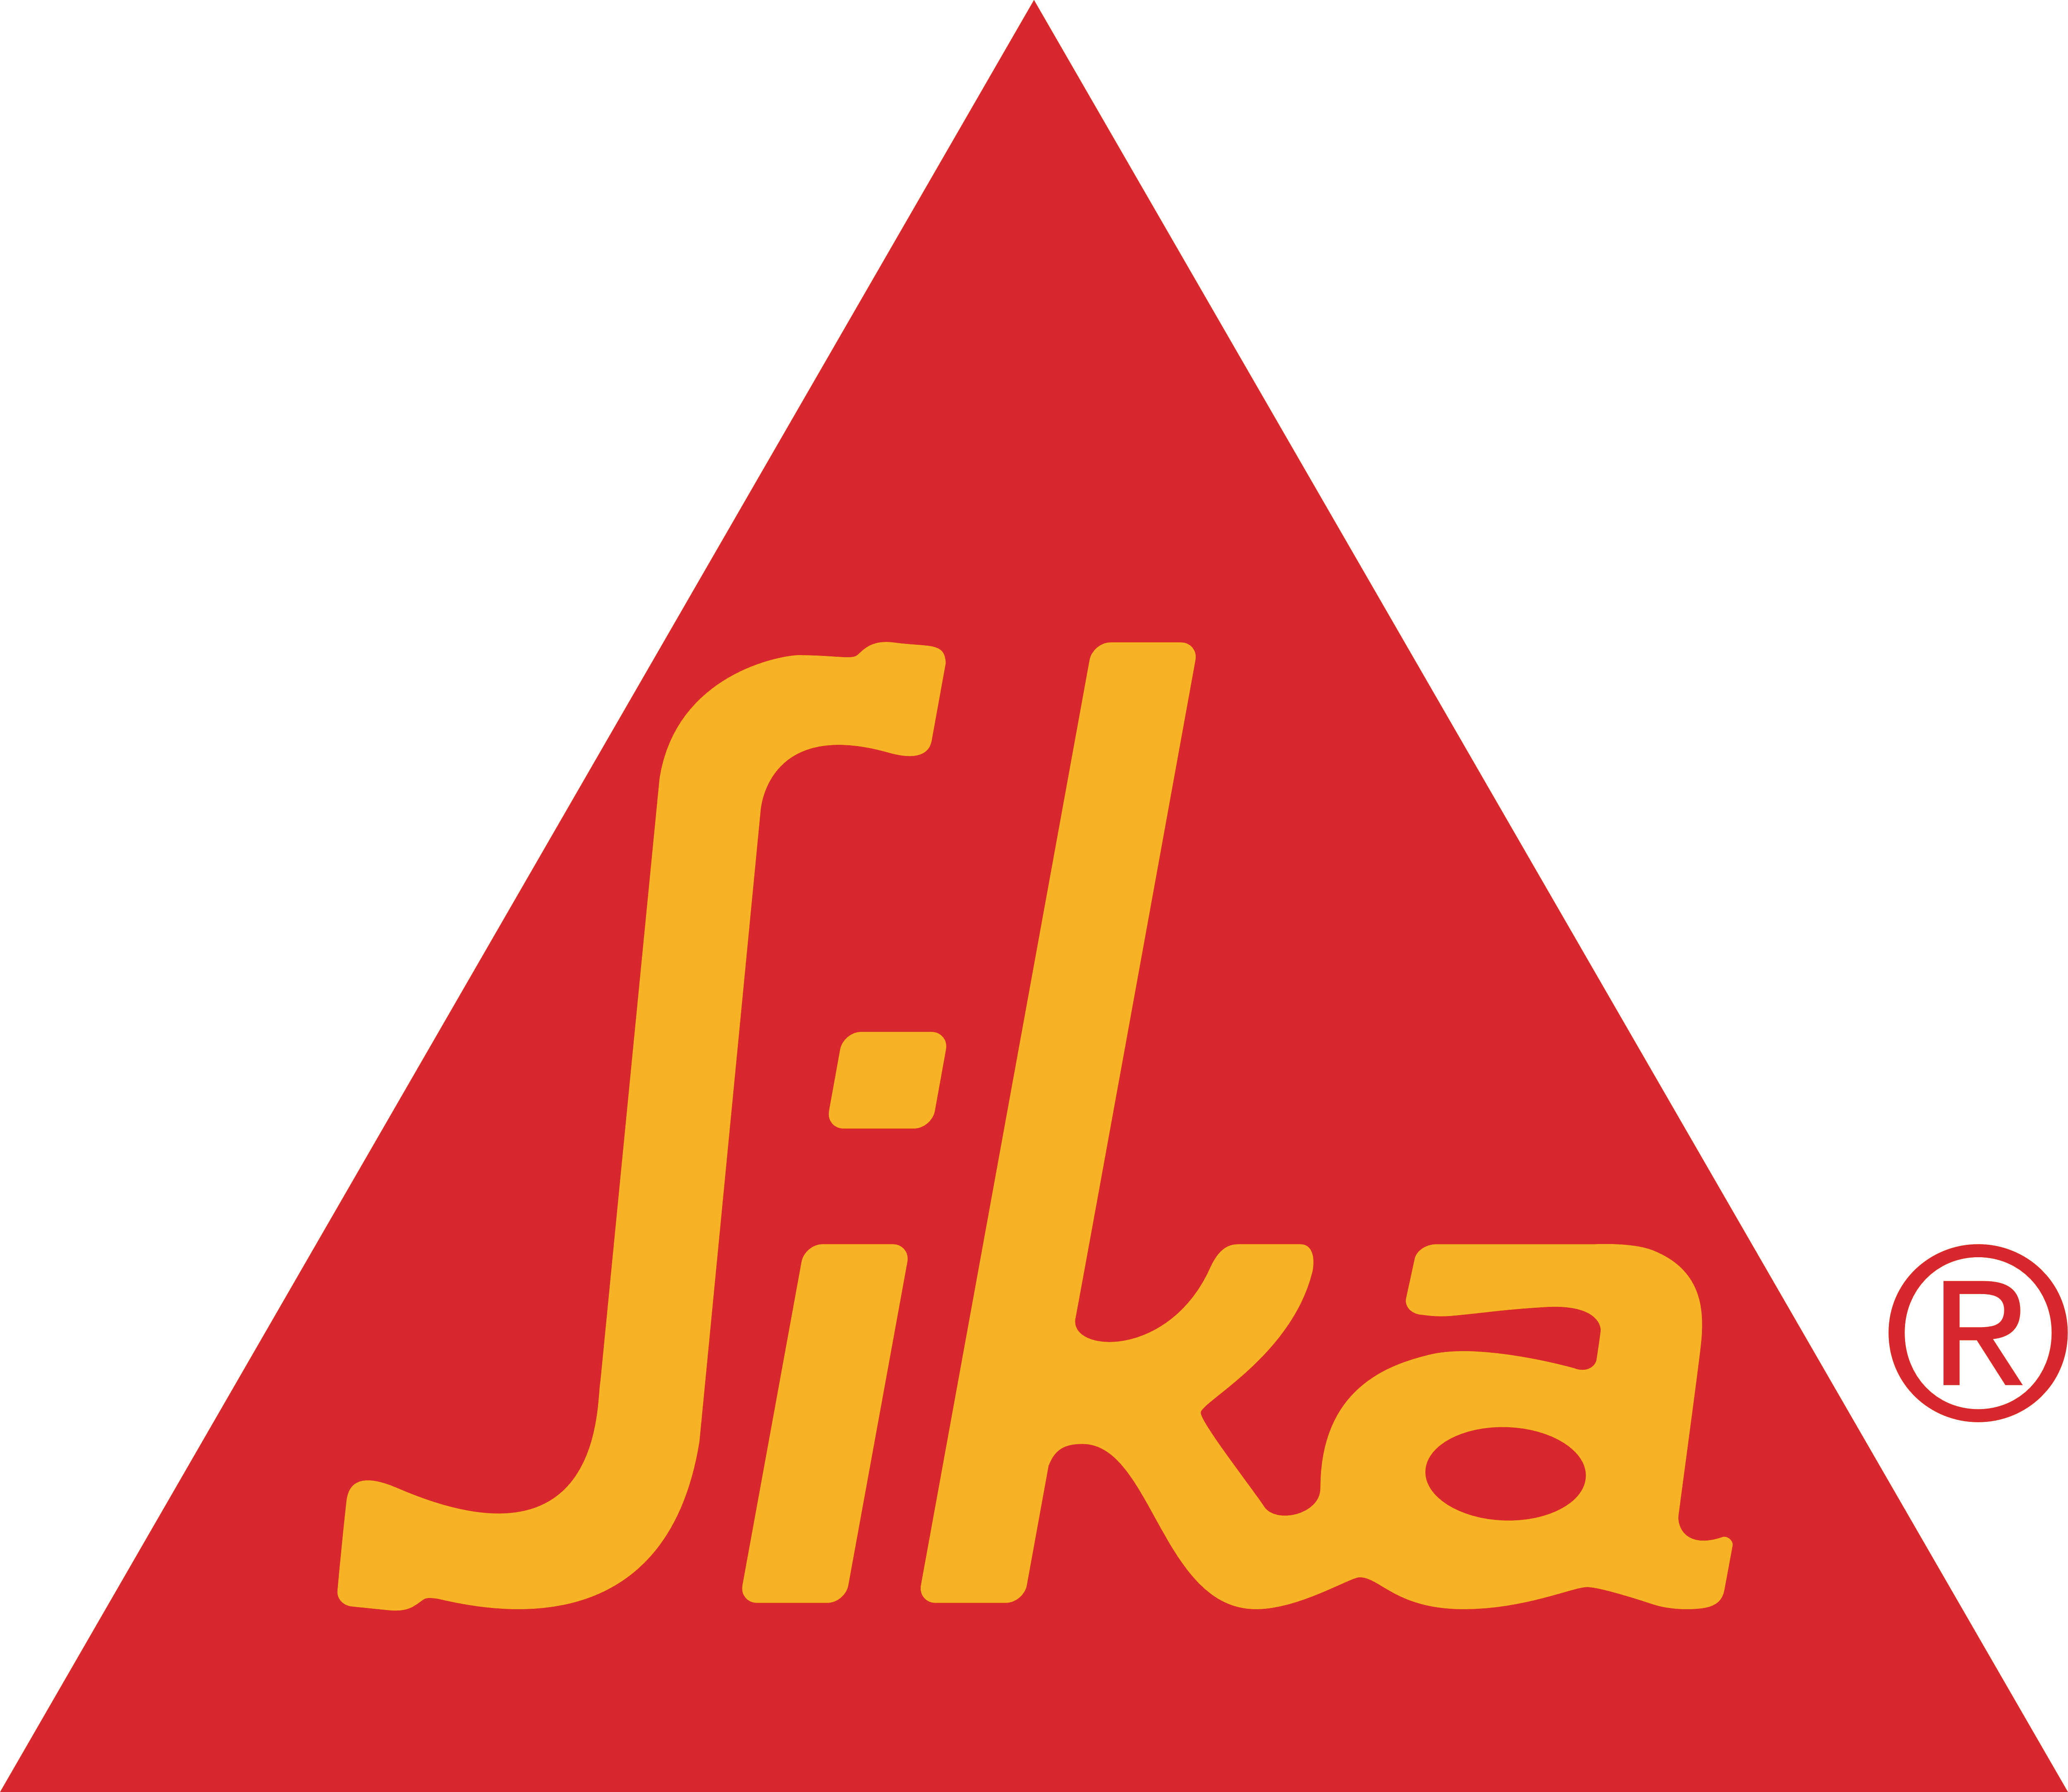 Norkan's Sika Distributor Center